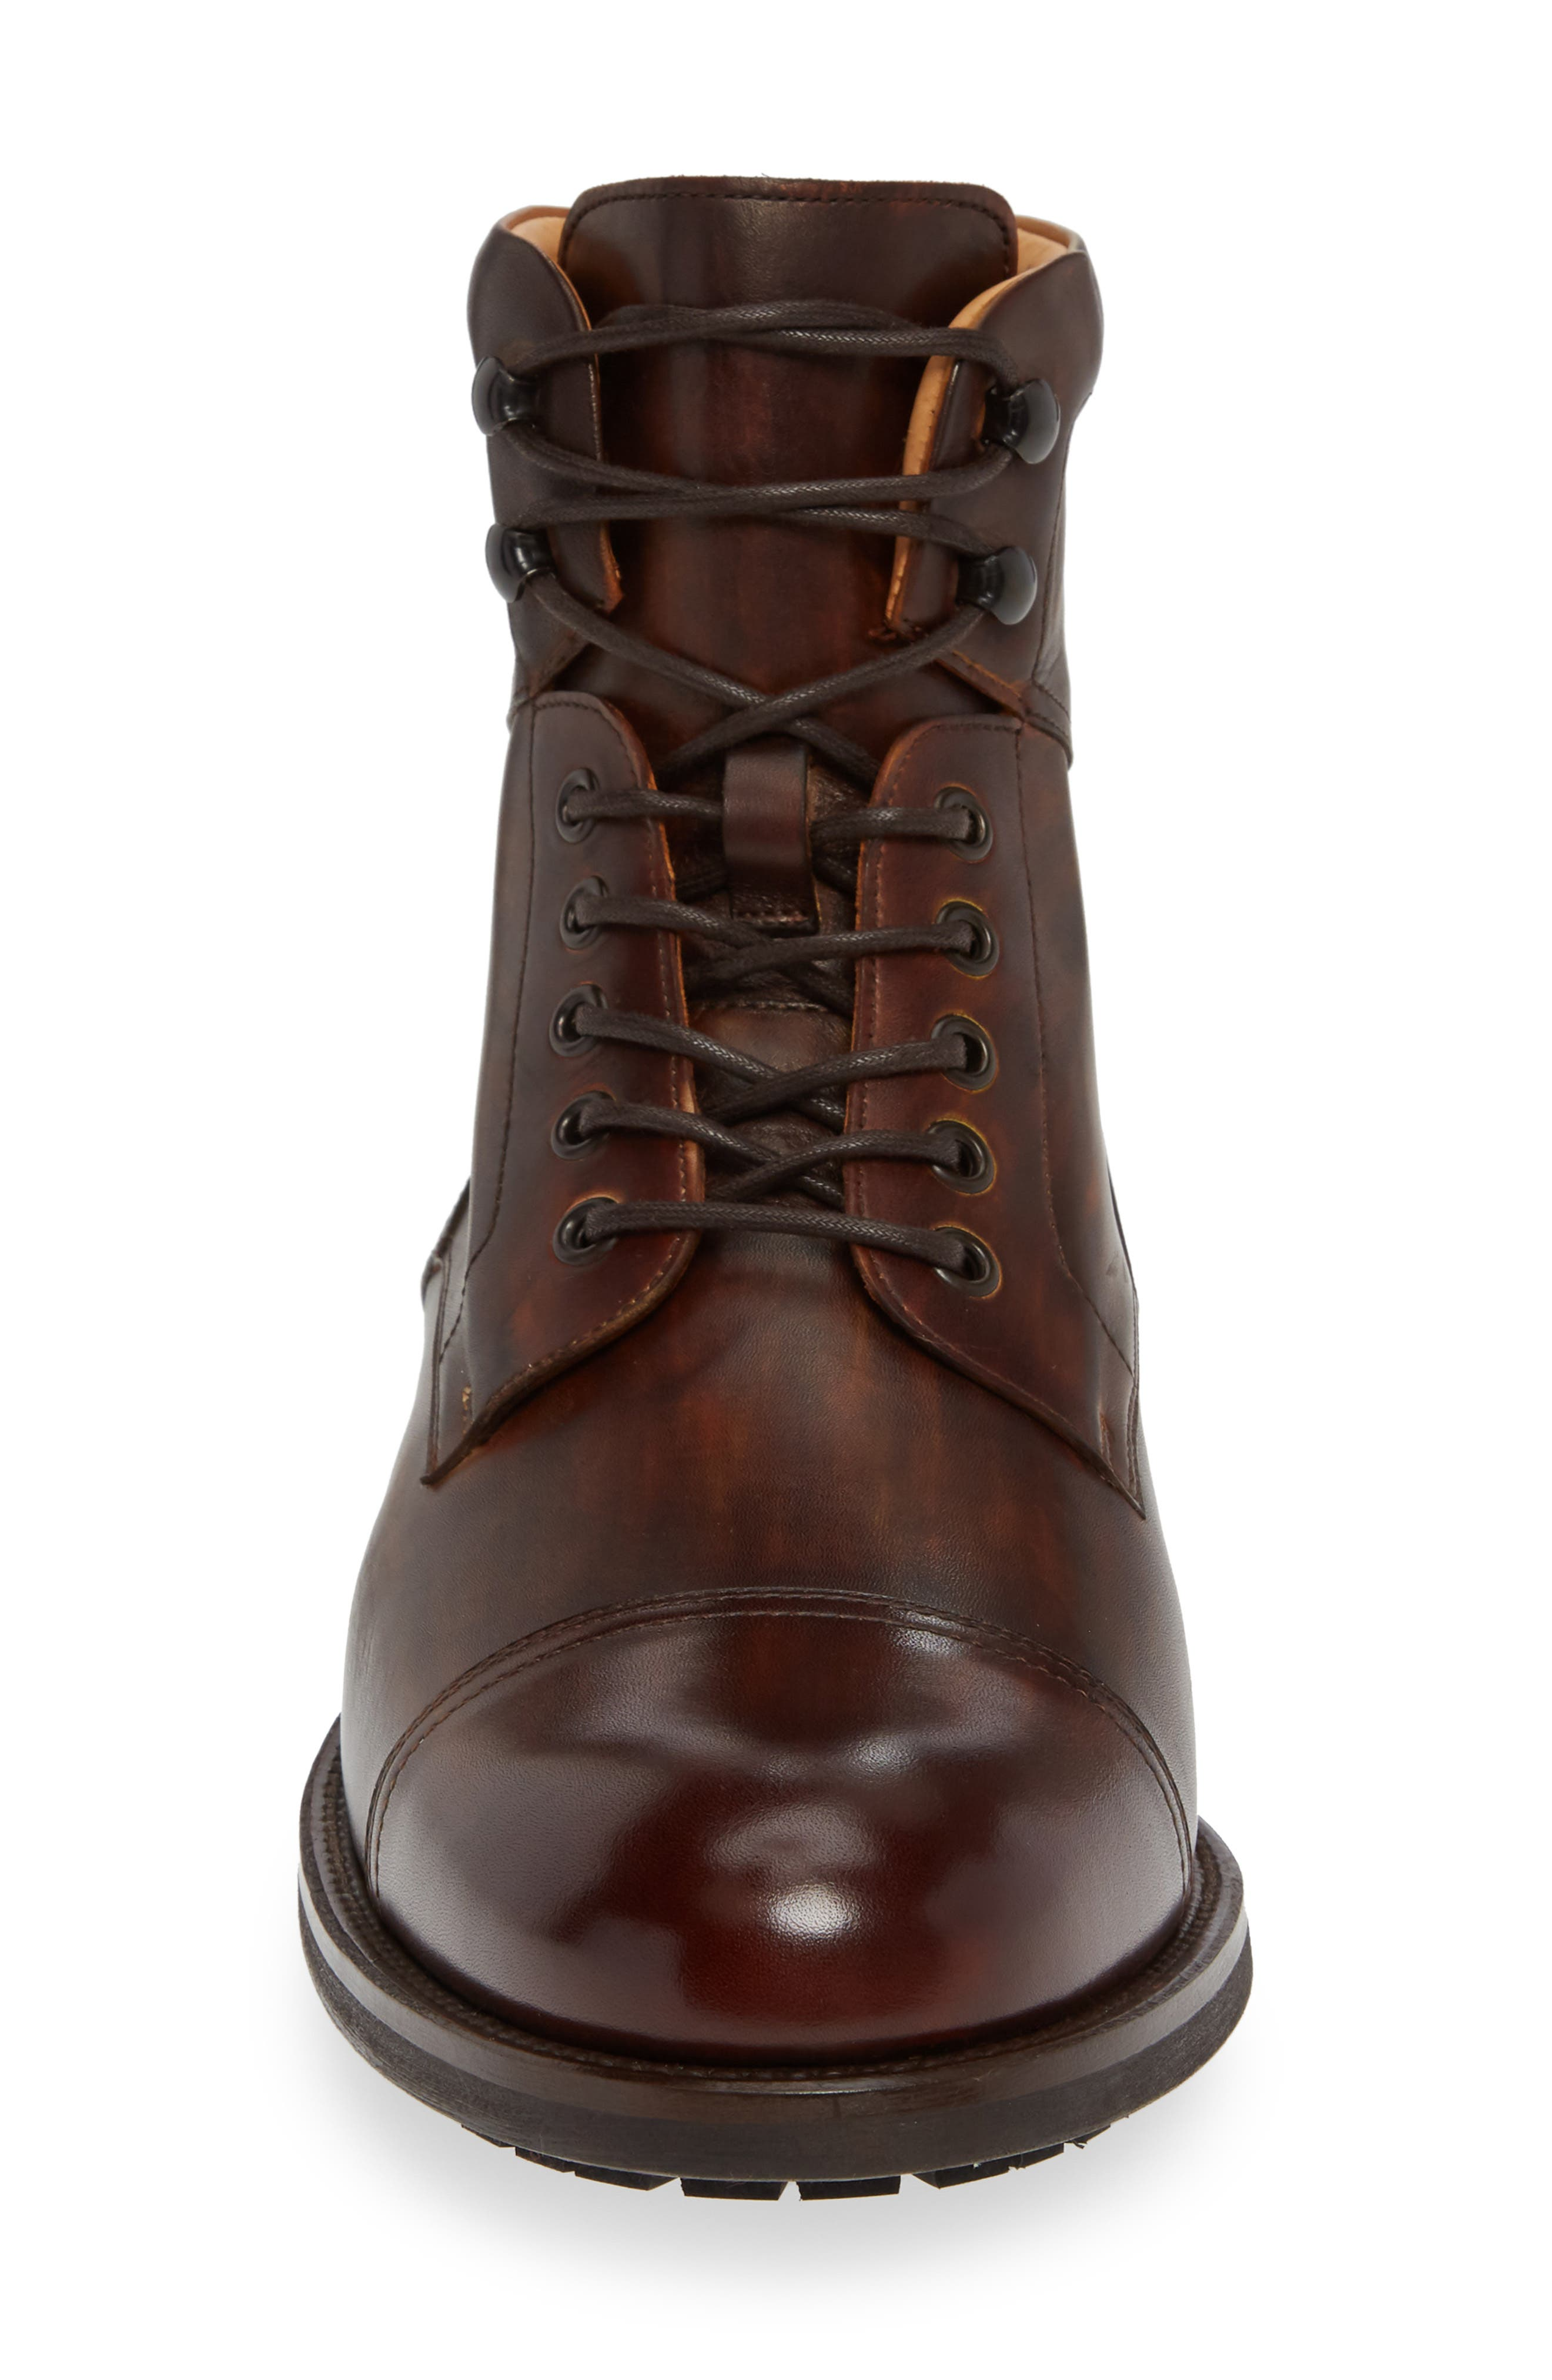 MAGNANNI, Peyton Cap Toe Boot, Alternate thumbnail 4, color, TOBACCO LEATHER